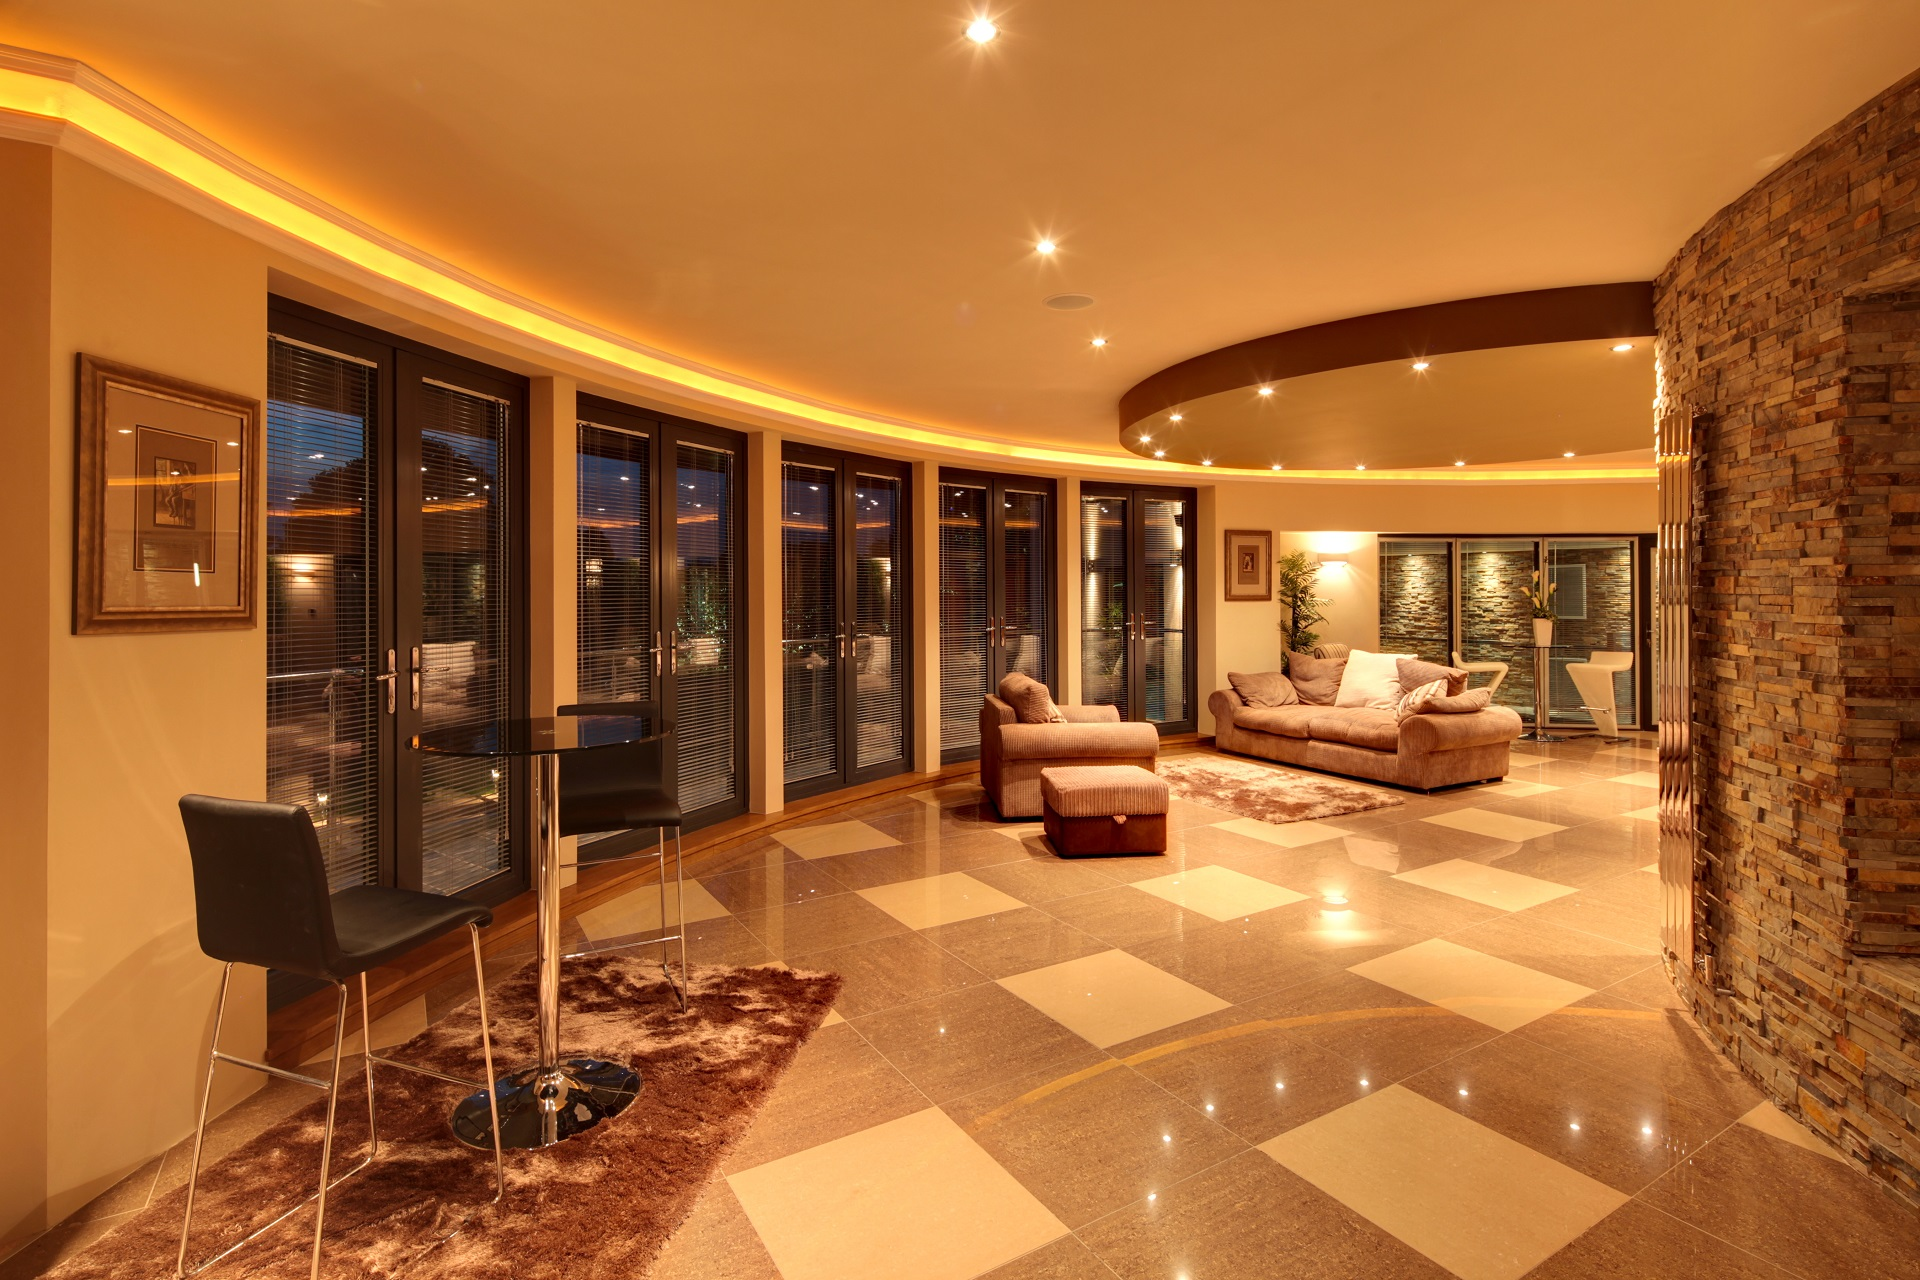 curved luxurious living space, Hall View by Guy Phoenix